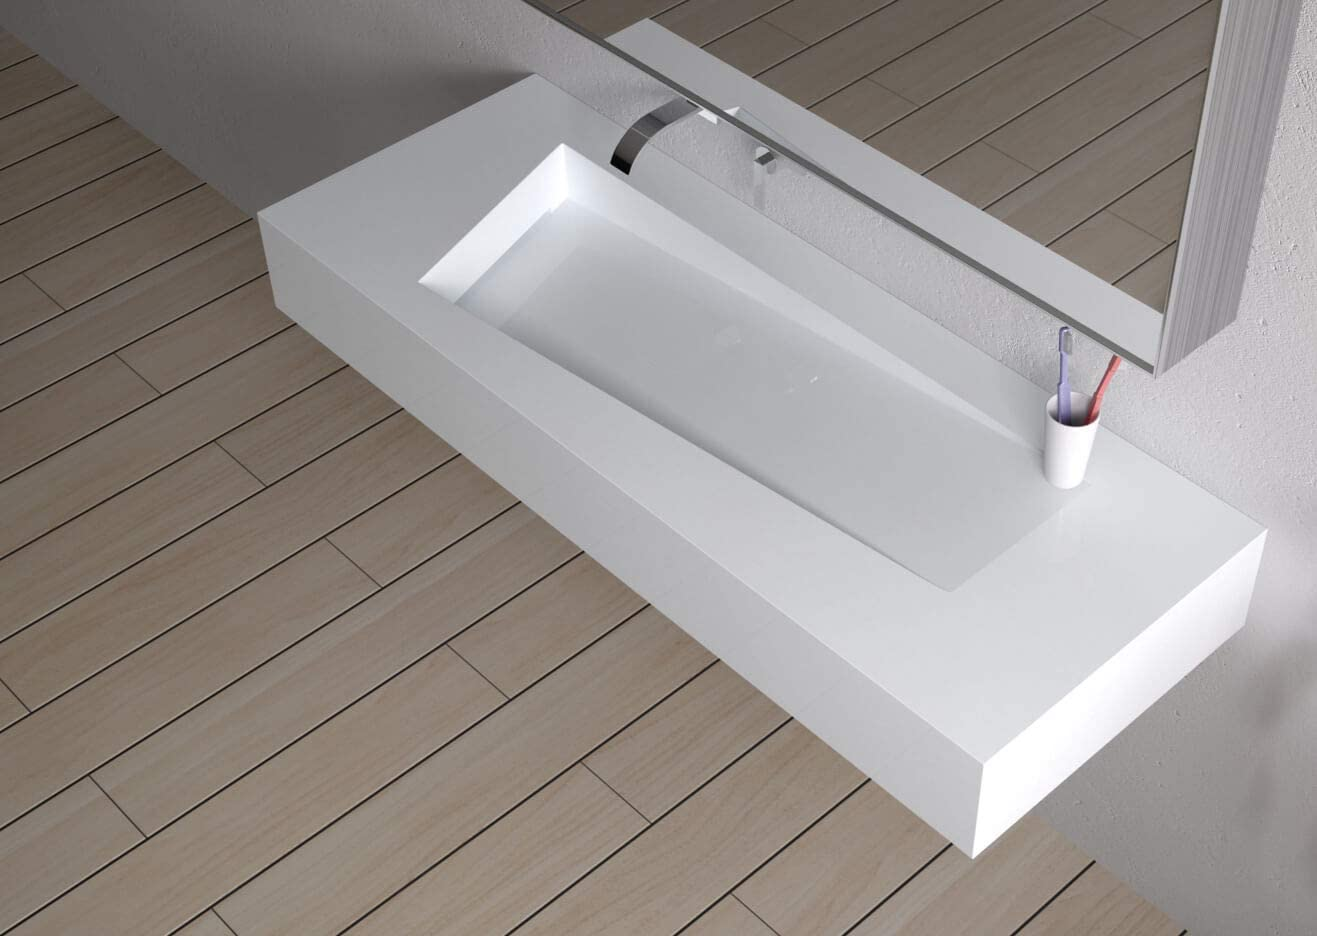 Ice Grey KOHLER K-2957-1-95 Persuade Circ Integrated Bathroom Sink with Single-Hole Faucet Hole Drilling